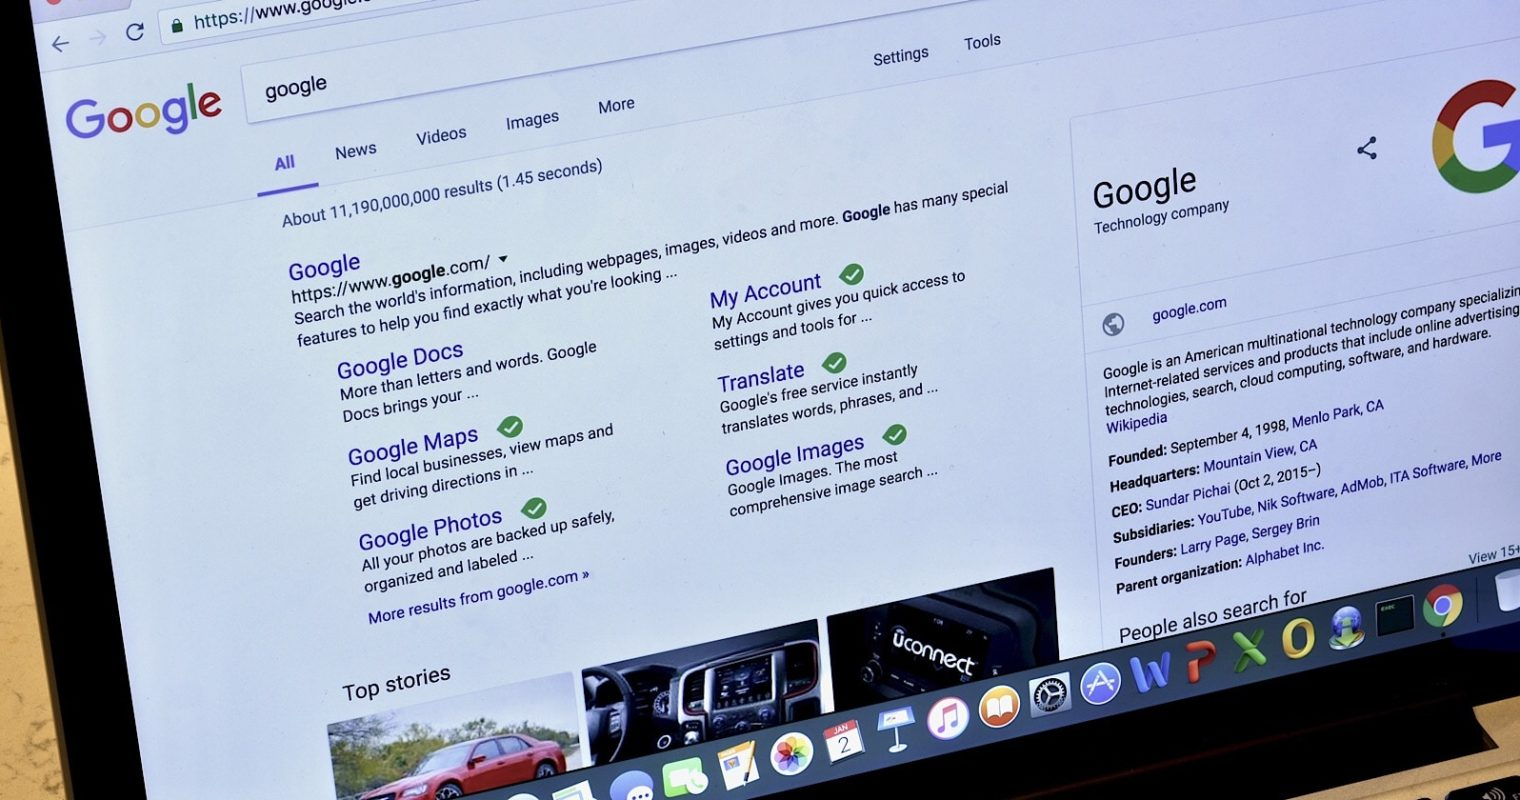 Google Explains Why Rich Snippets Are Not Showing Up in Search Results